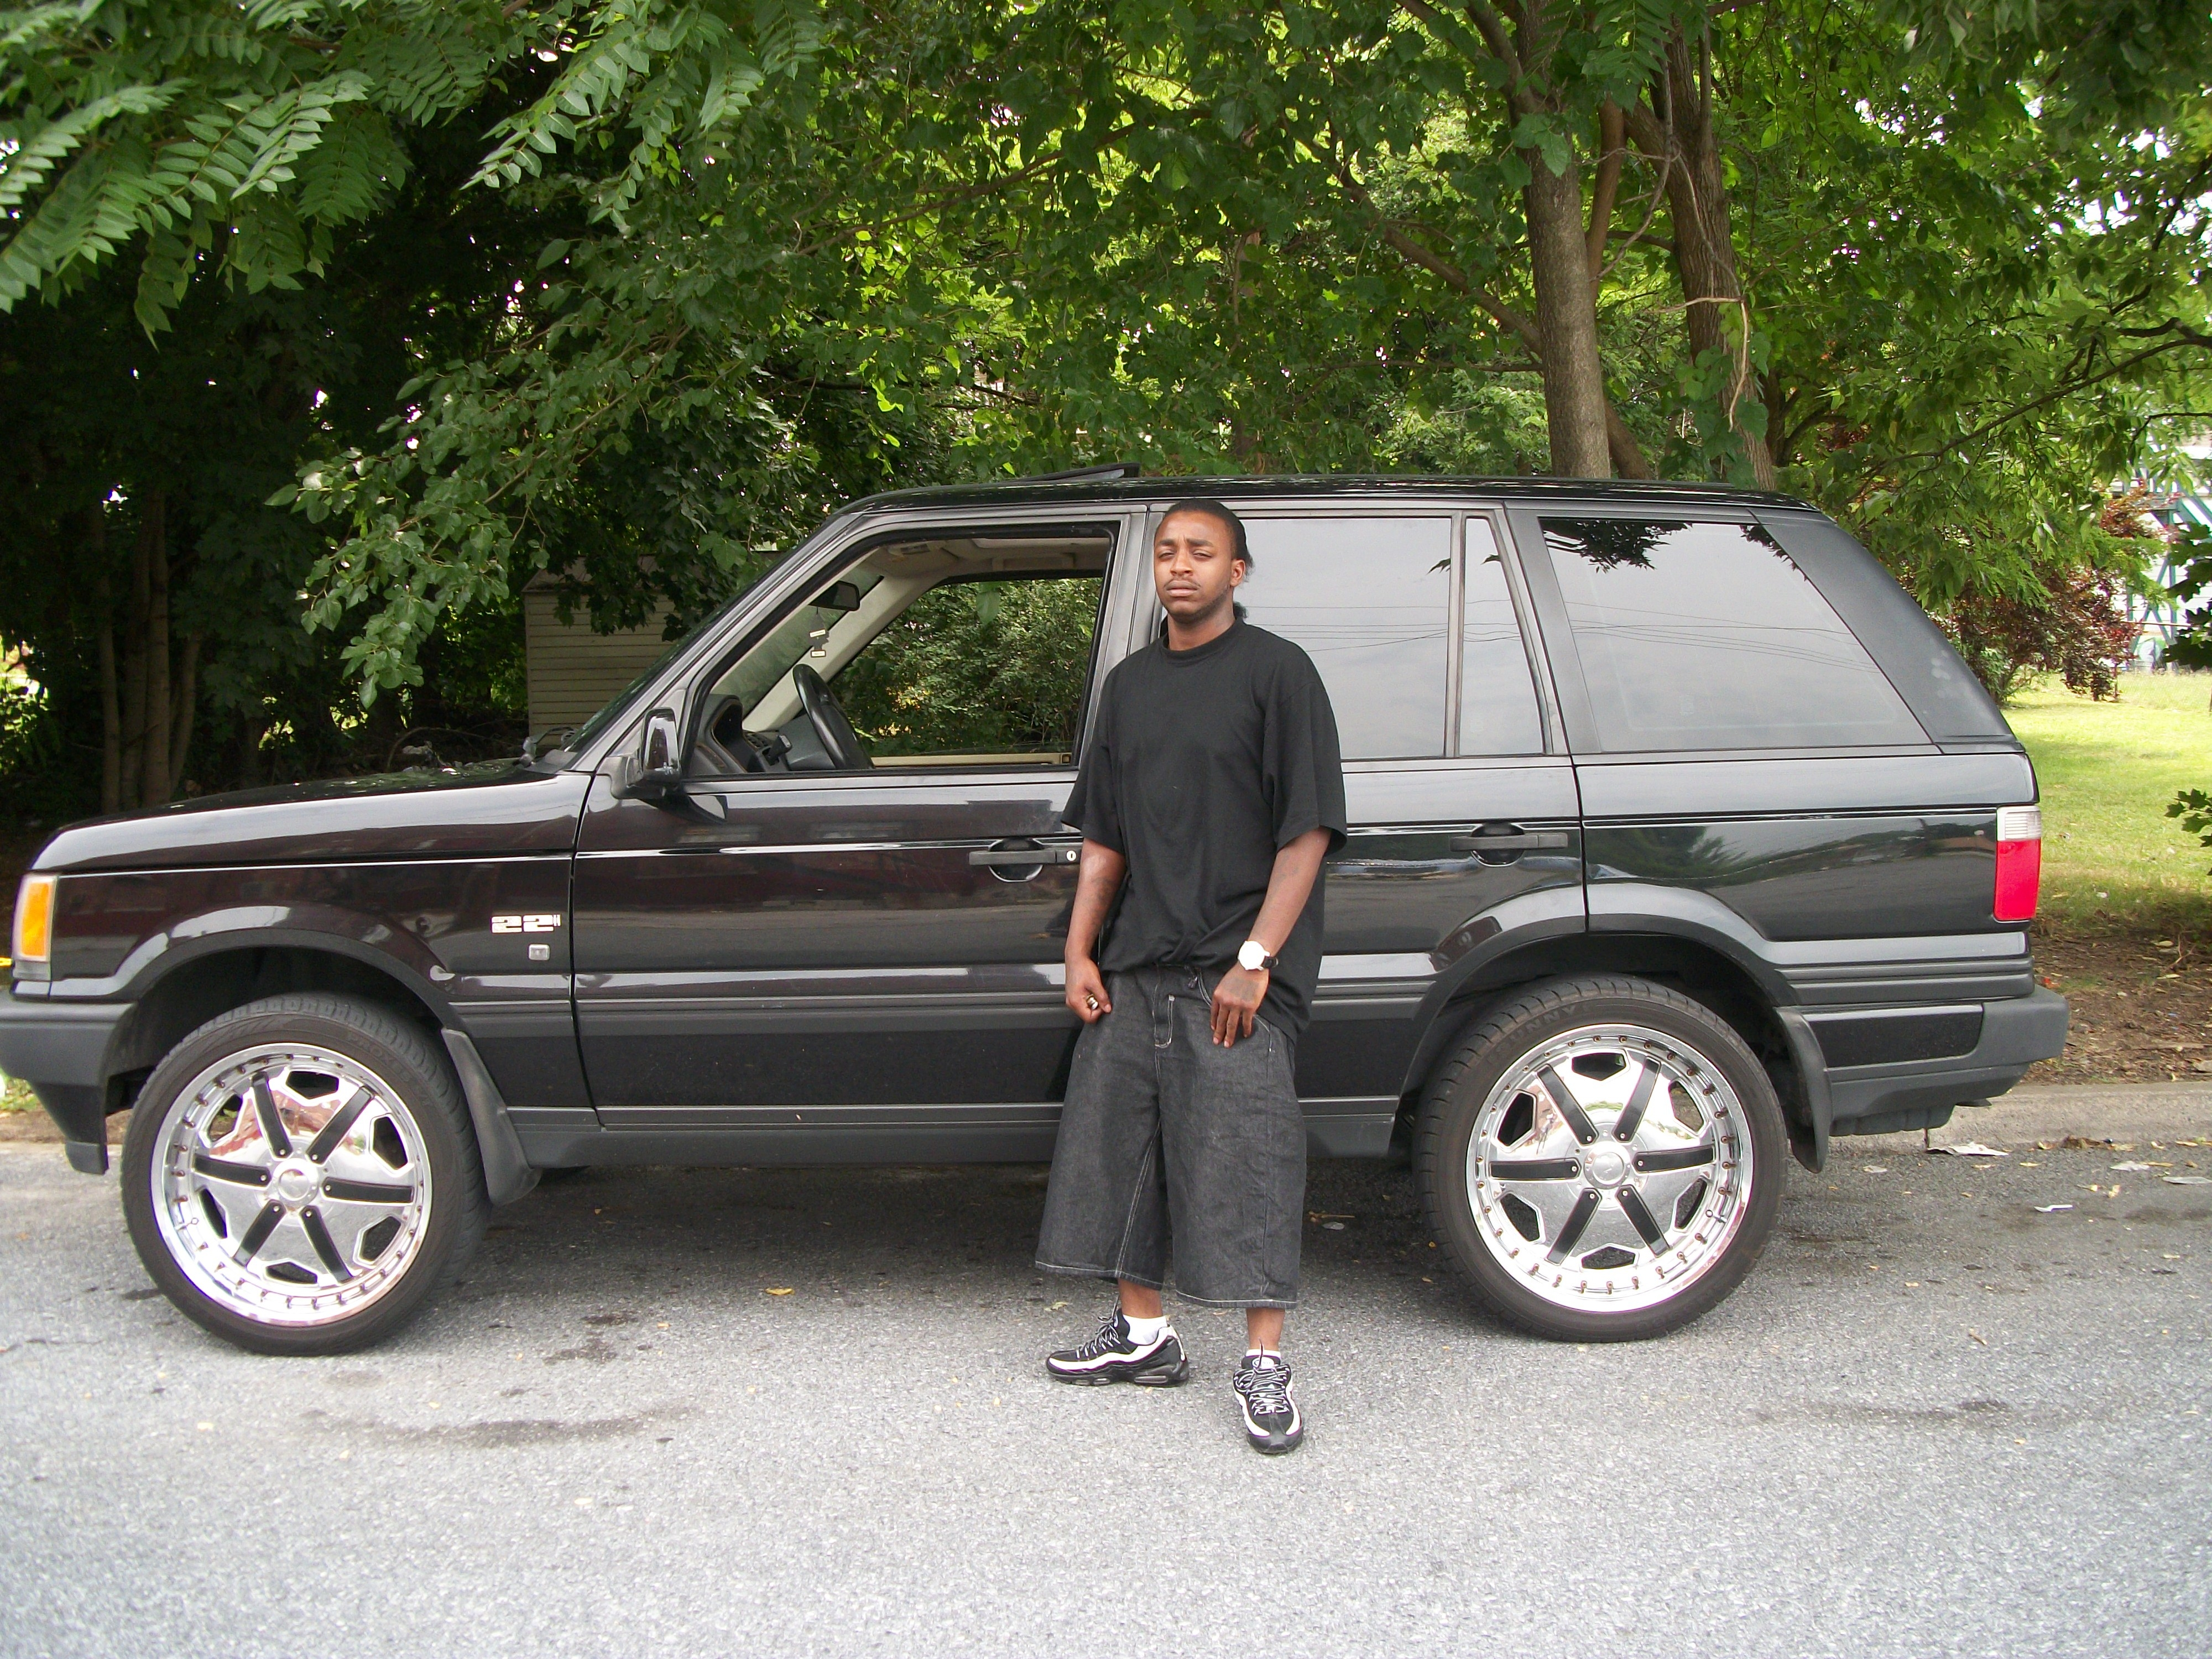 Itstragbaby 2000 Land Rover Range Rover4 6 Hse Sport